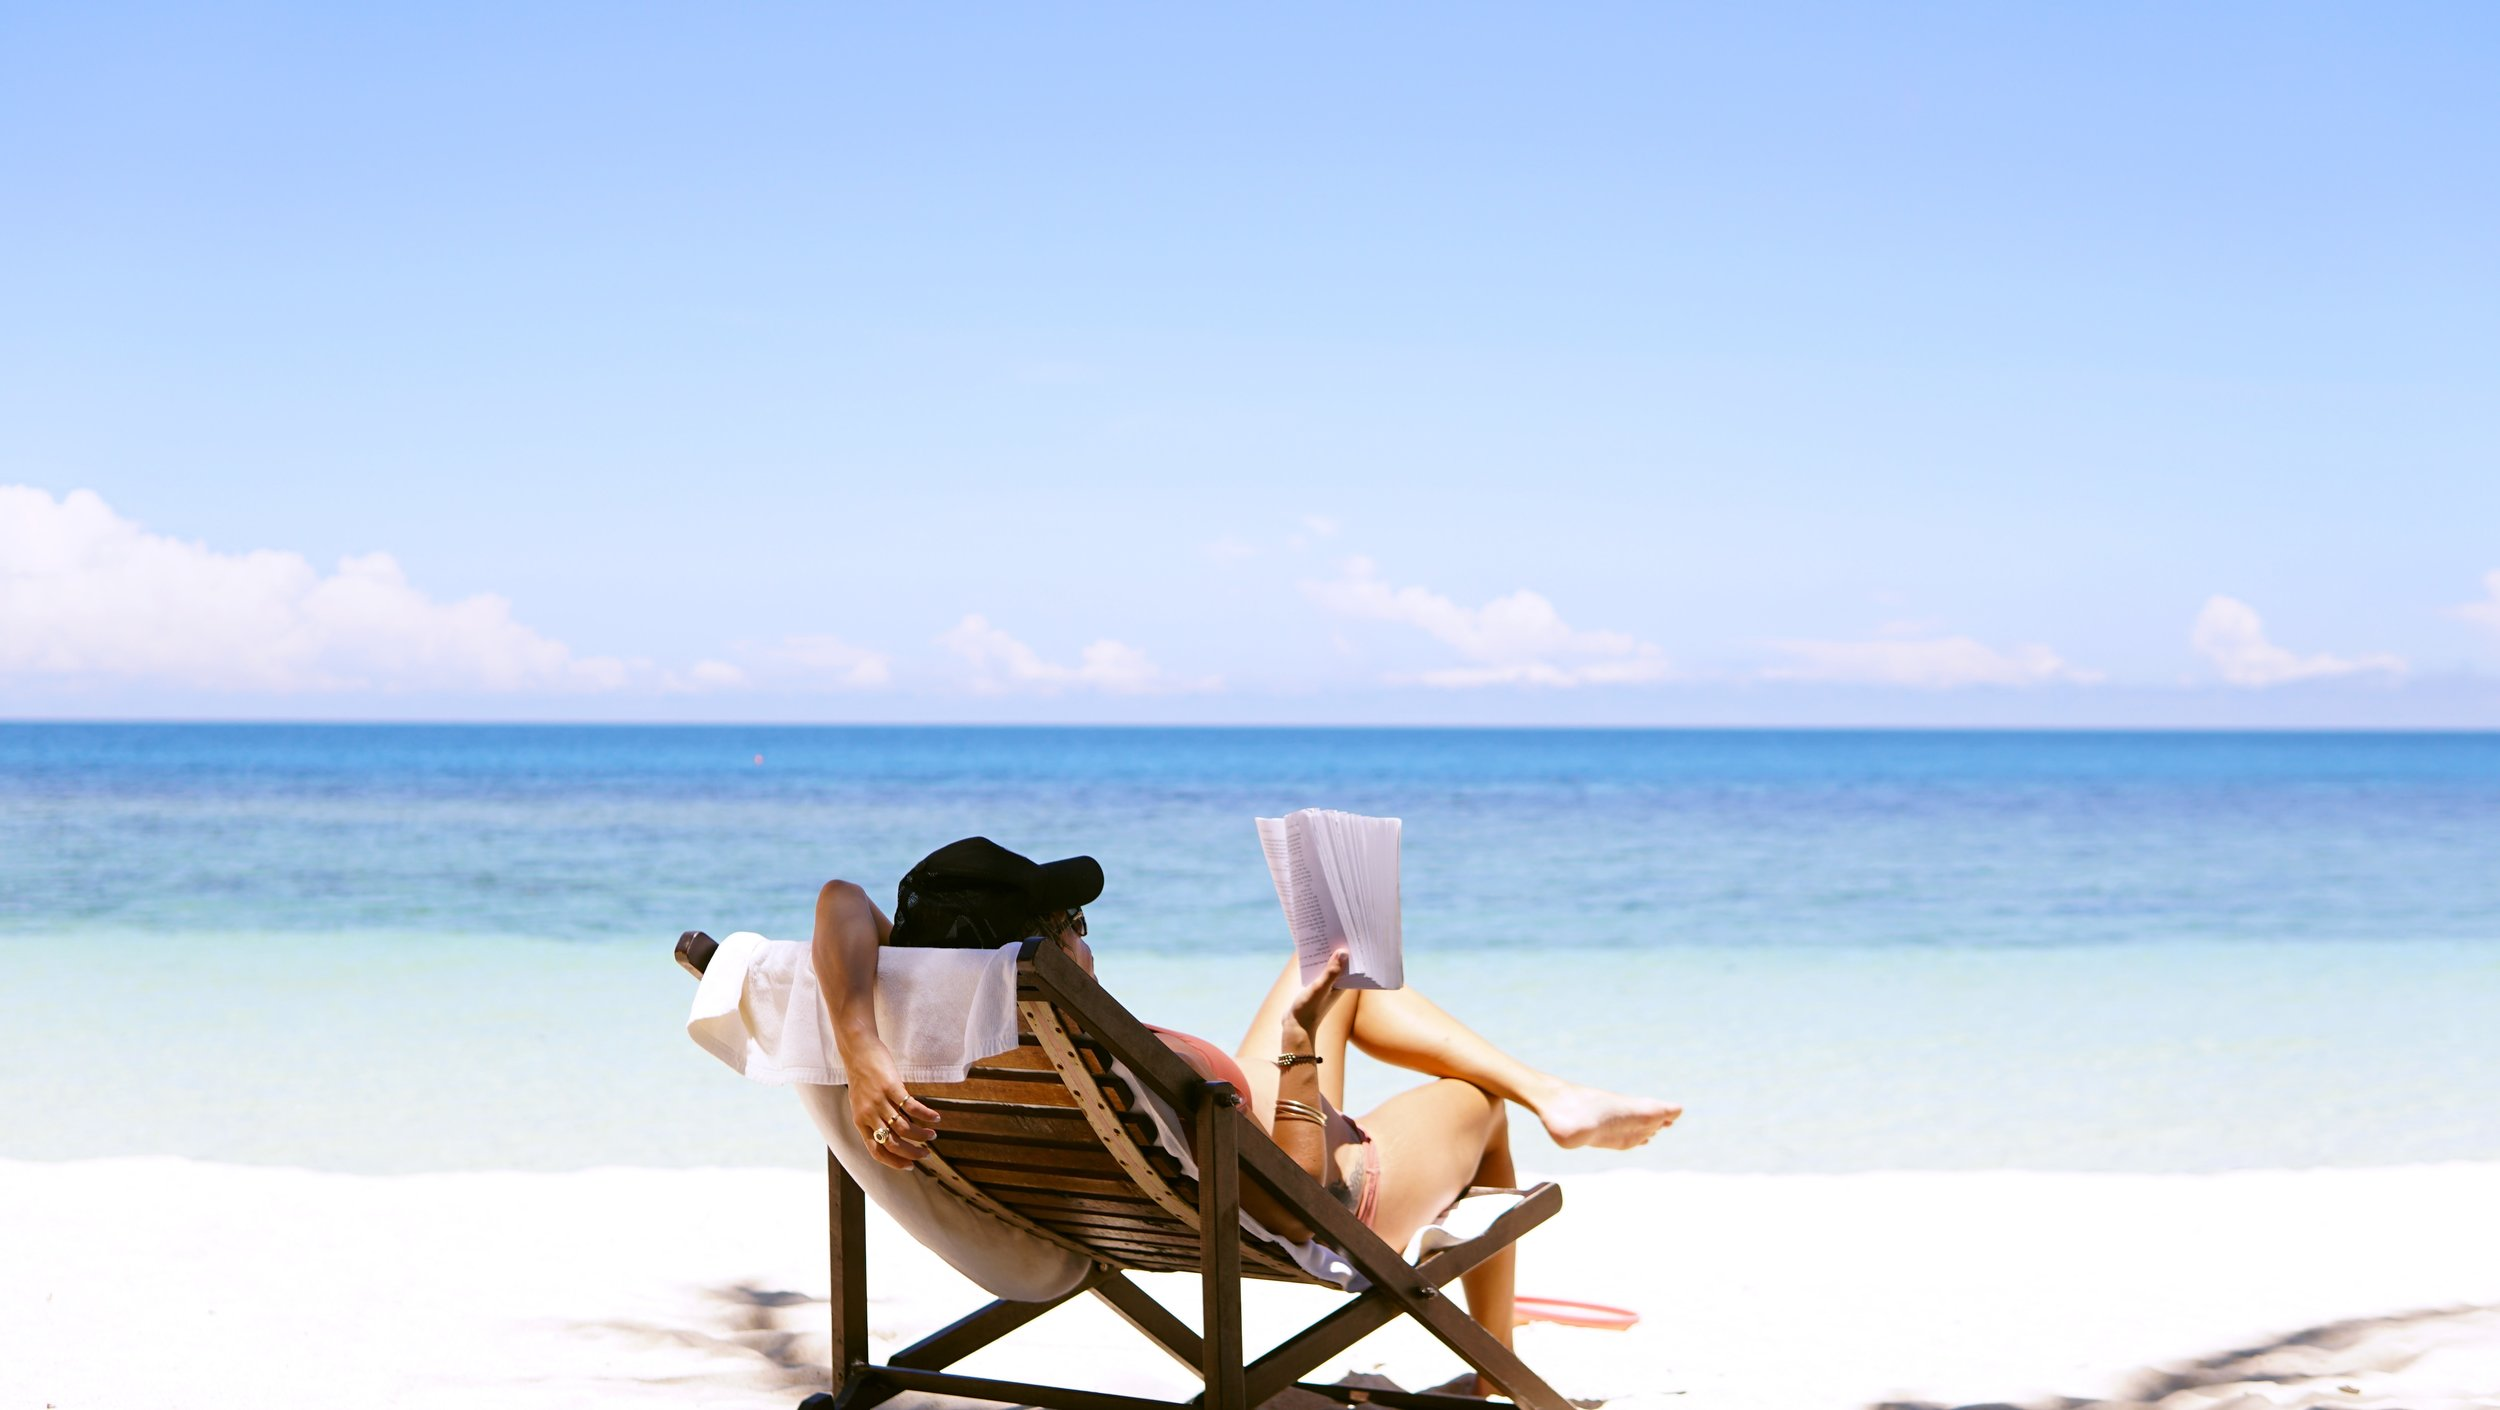 Your dream vacation is closer than you think. Take these budgeting steps to get there faster.